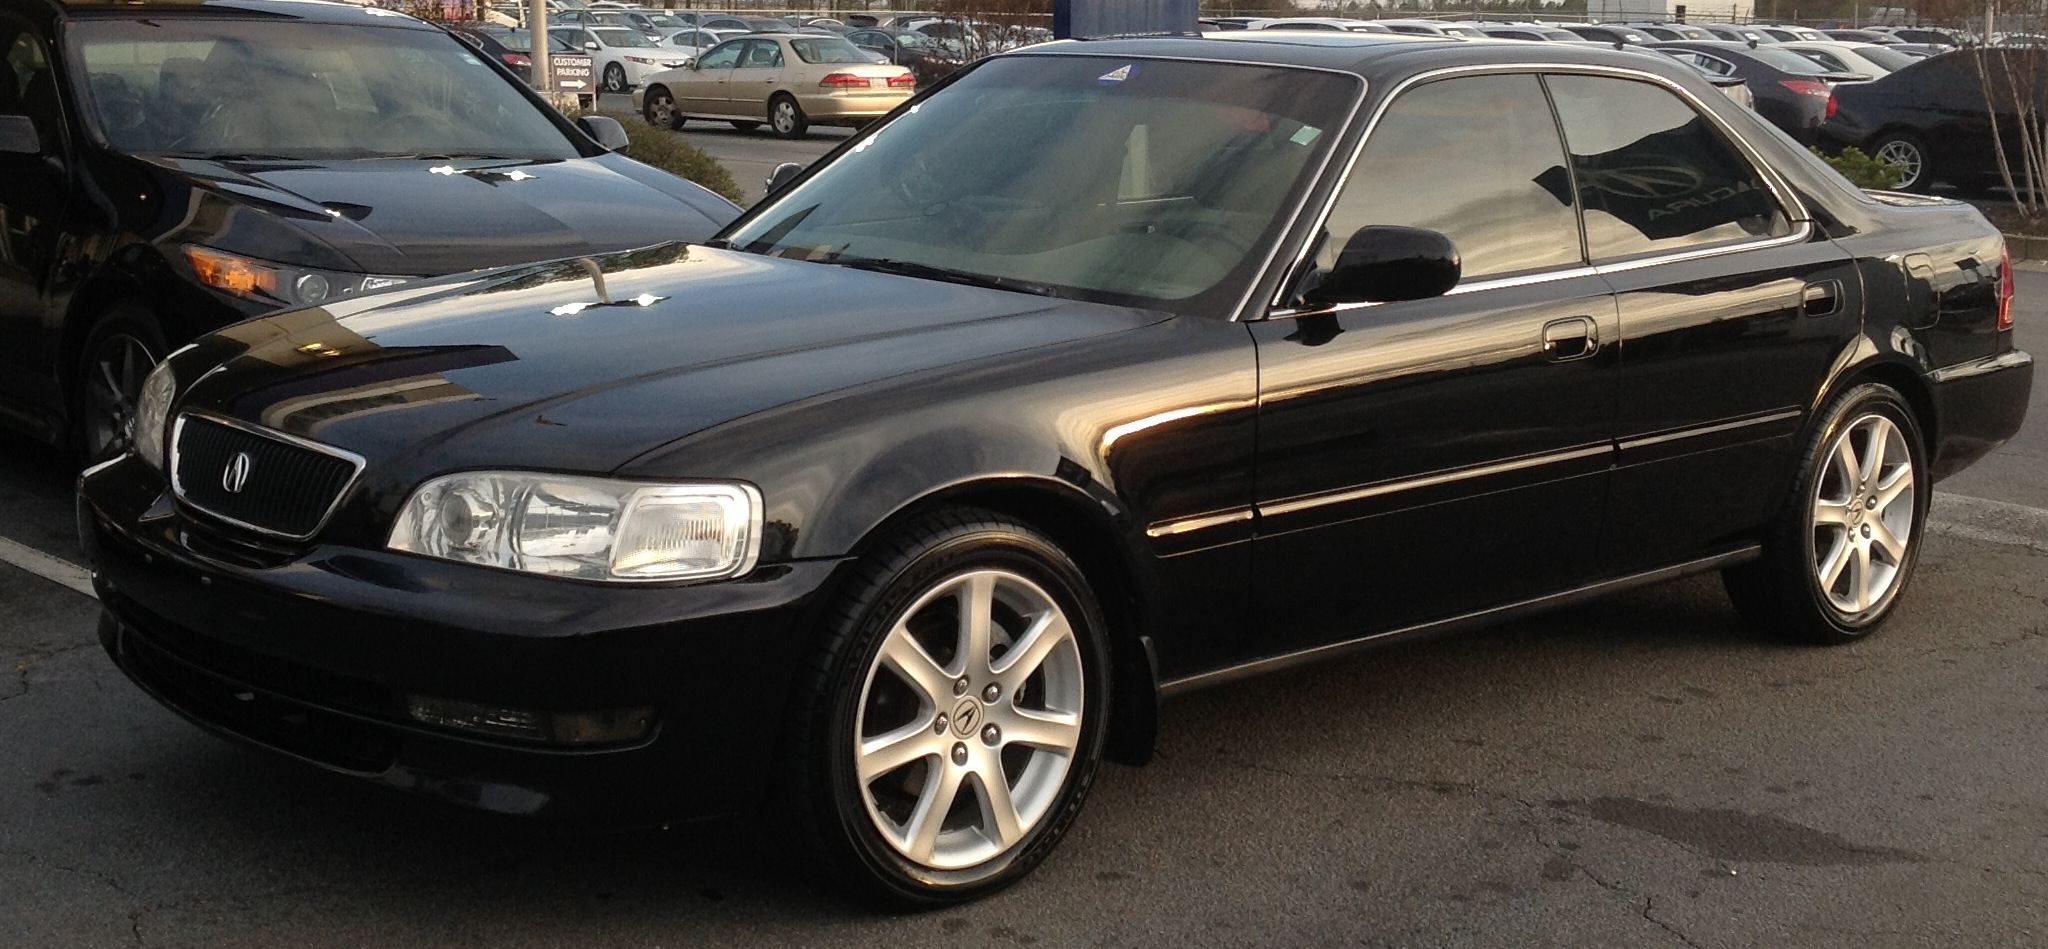 Reader S Ride Paul S 1998 Acura 3 2 Tl Drivetofive